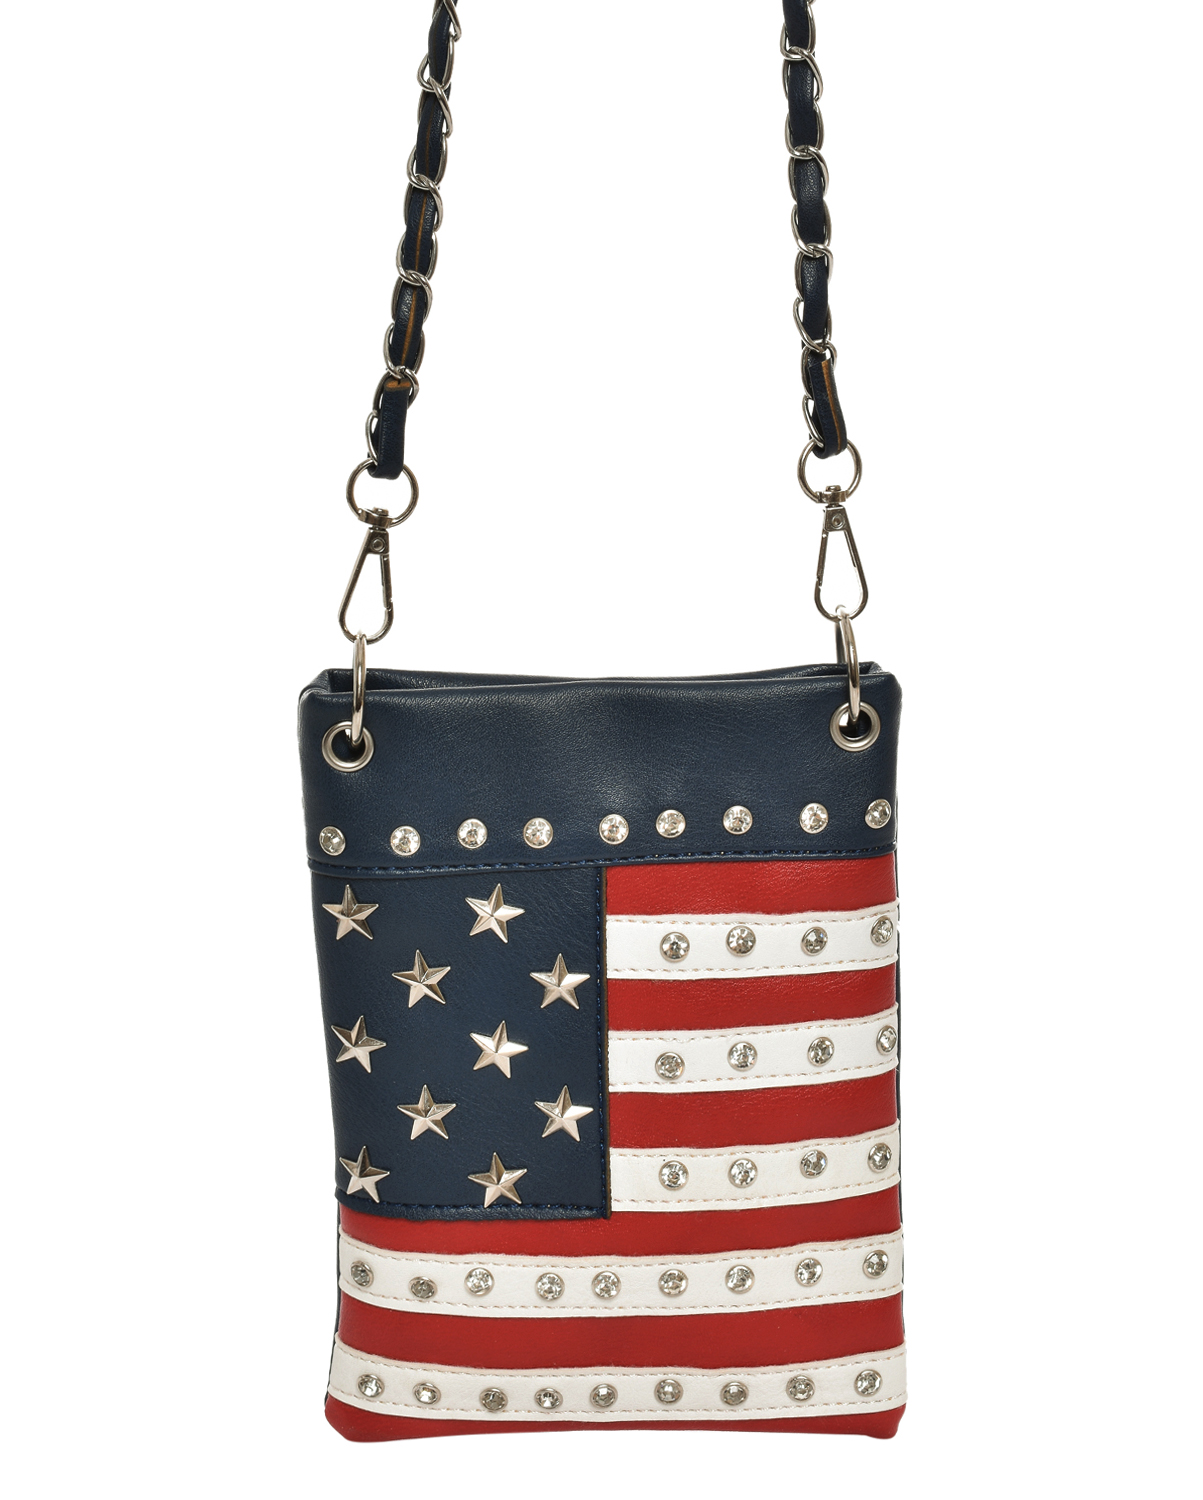 2030AGB(NV)-wholesale-mini-messenger-bag-american-flag-color-usa-stars-striped-rhinestone-silver-studs-crossbody(0).jpg